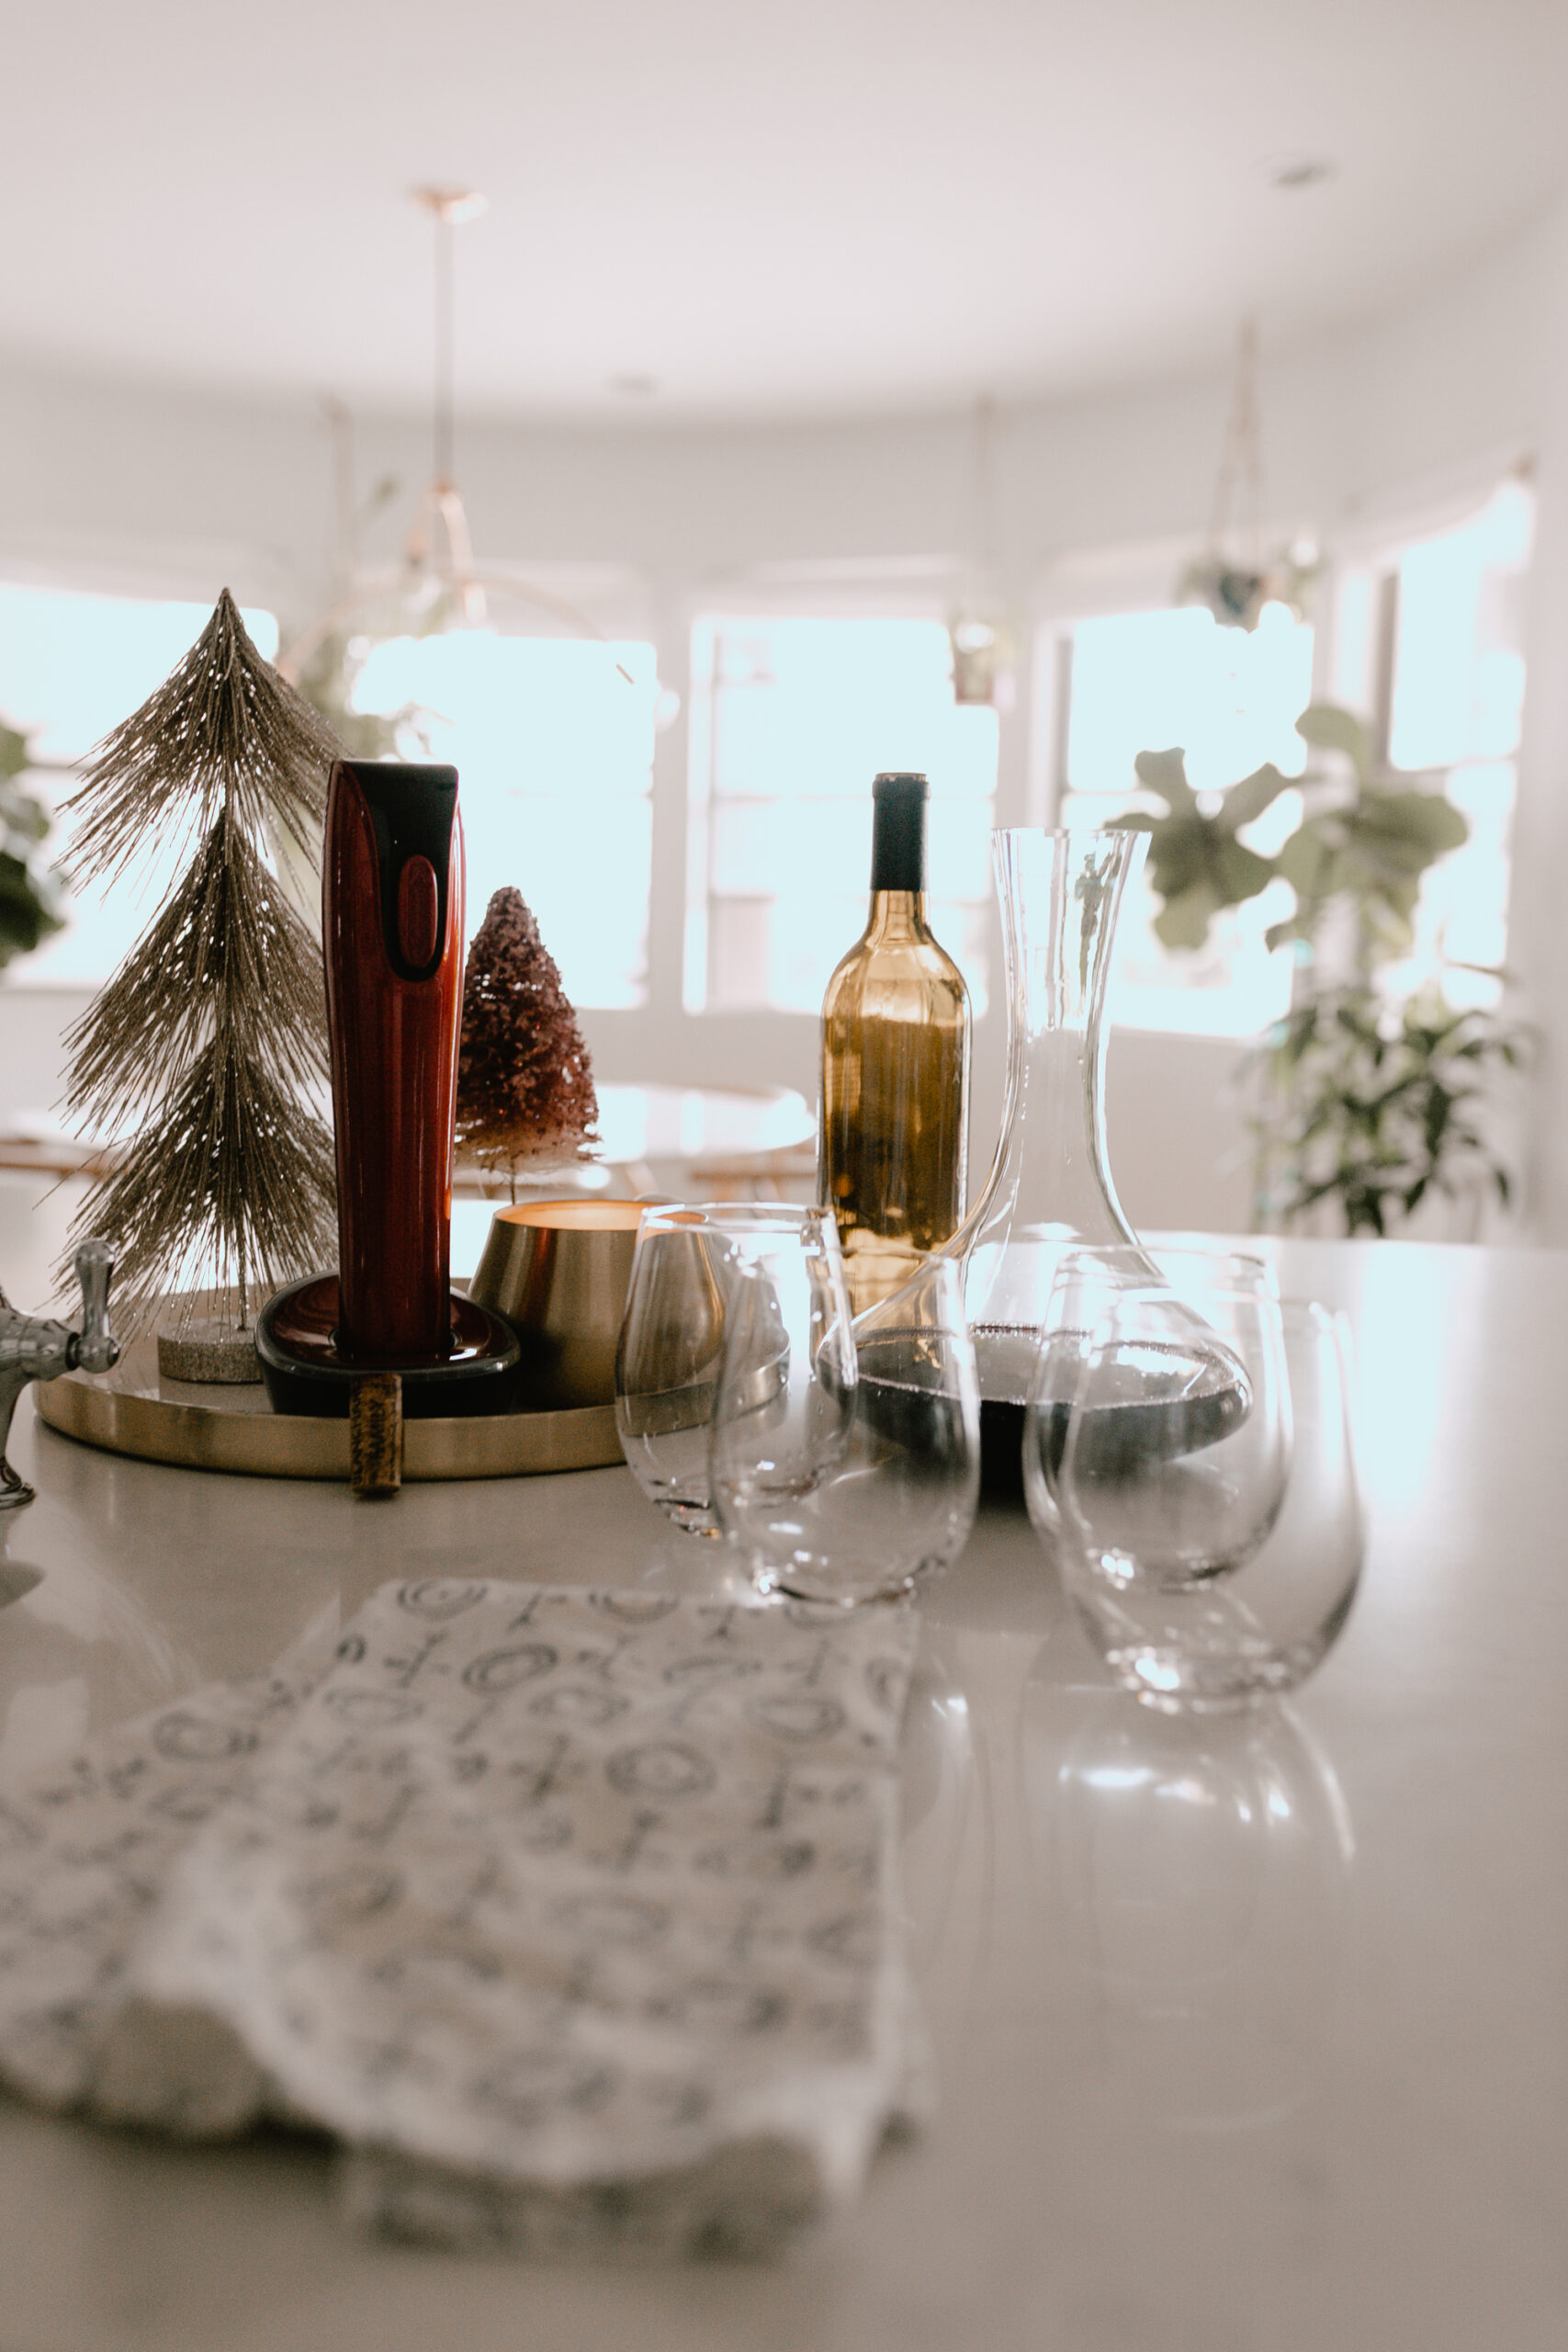 the best gifts for the wine lover #winelovergifts #giftideas #christmastime